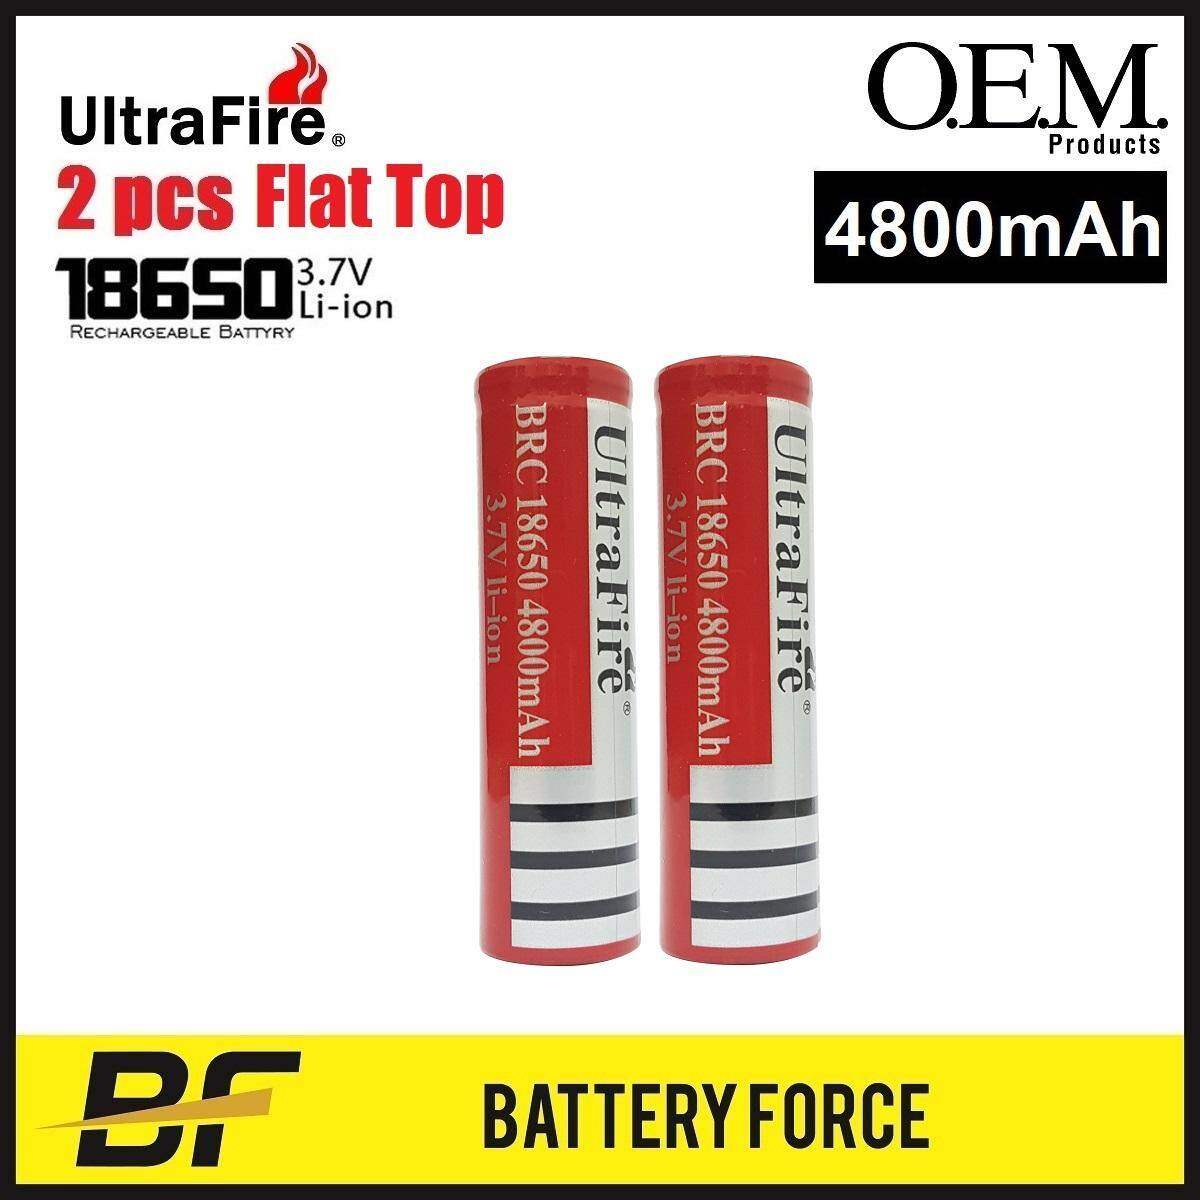 3.7v 18650 Ultrafire 4800mah Flat Top Rechargeable Lithium Ion Battery Brc Vape Battery By Battery-Force.